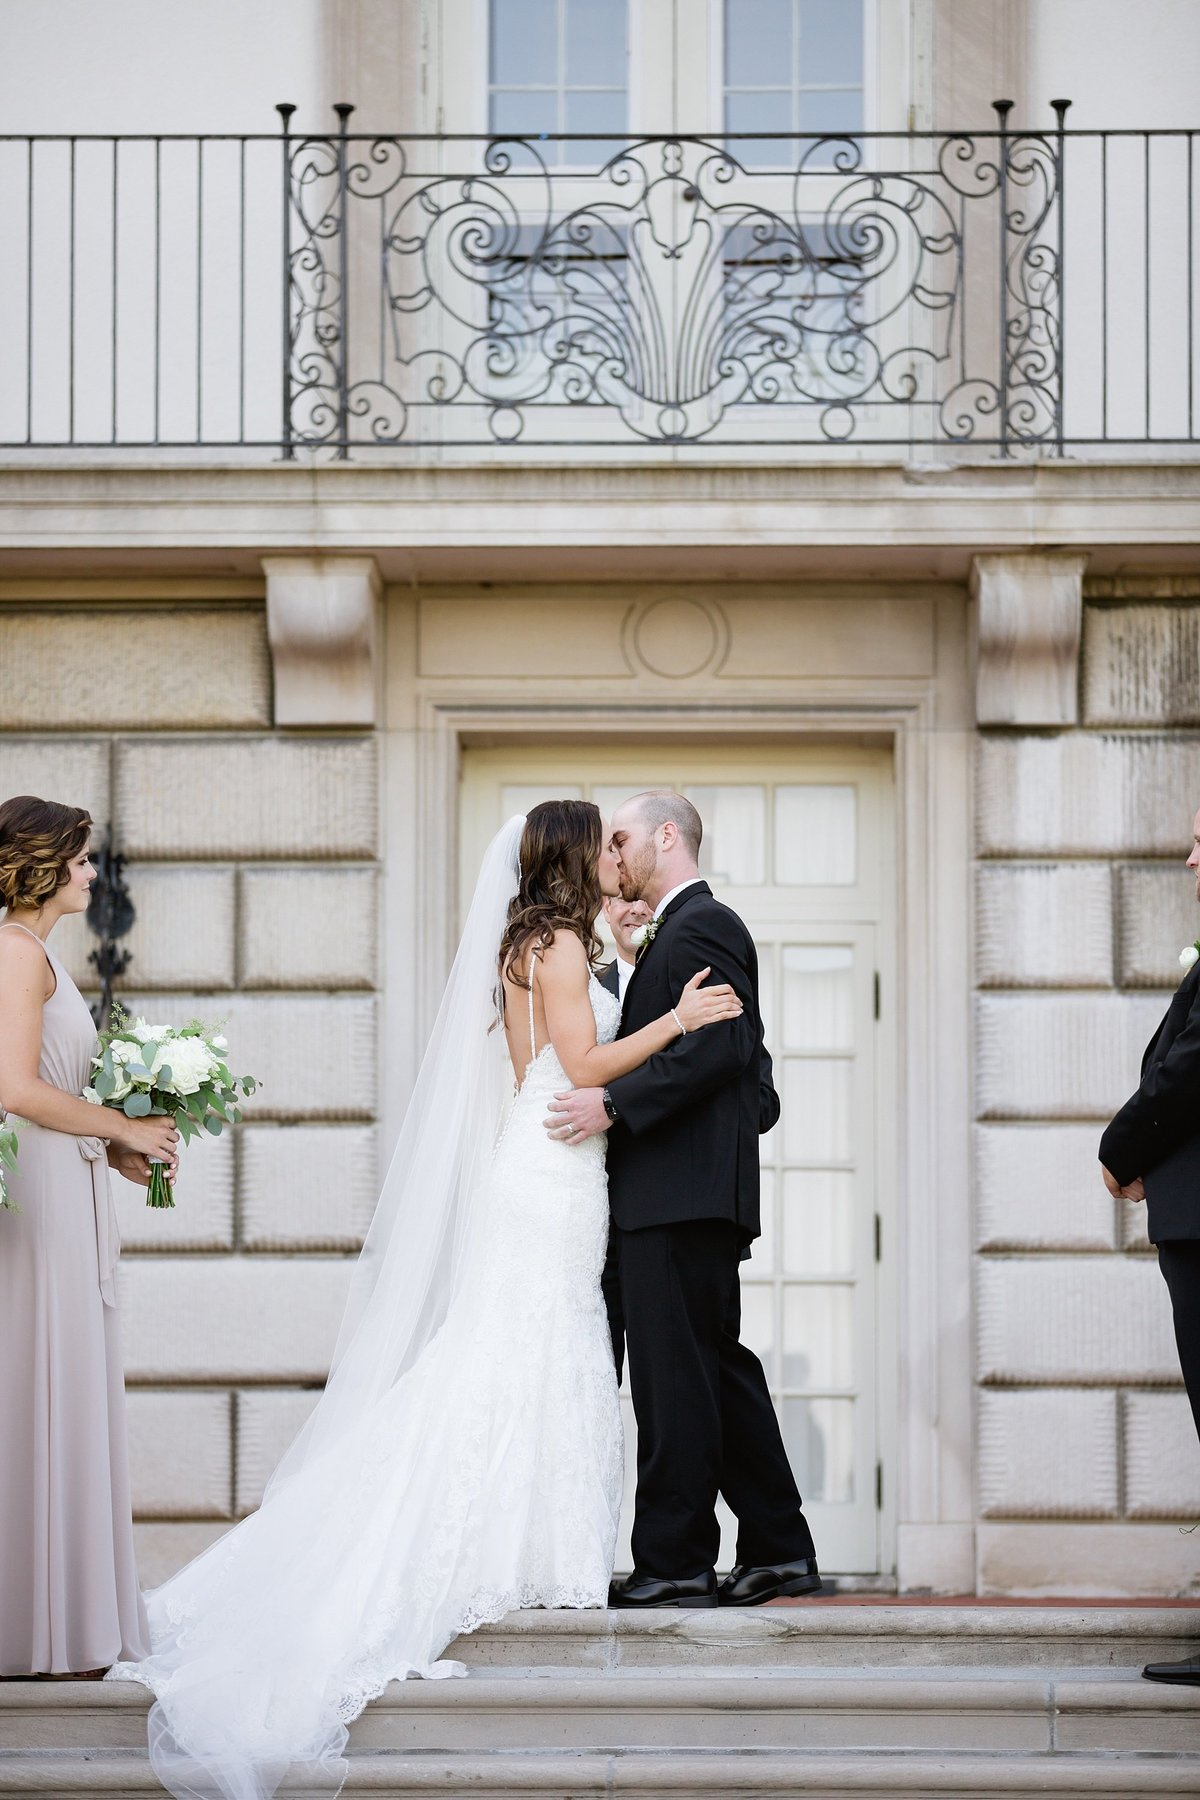 Shuster-Wedding-Grosse-Pointe-War-Memorial-Breanne-Rochelle-Photography94